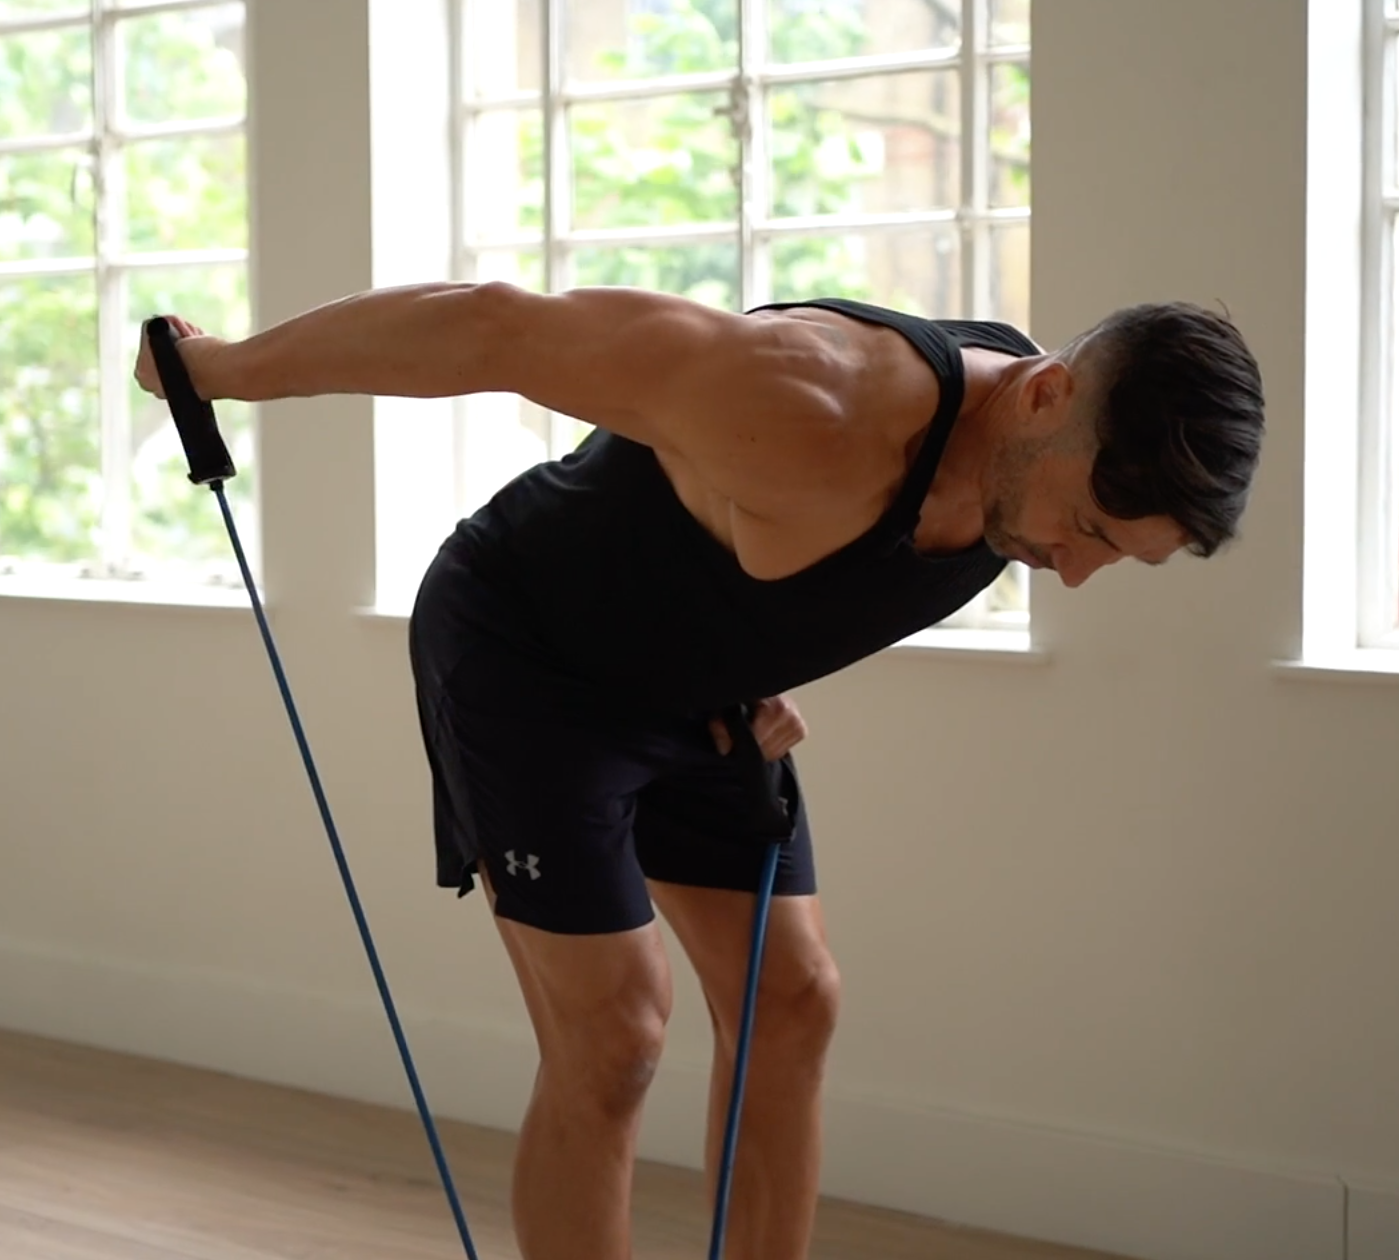 SUPERBAND 6 Exercise Timed Interval Push